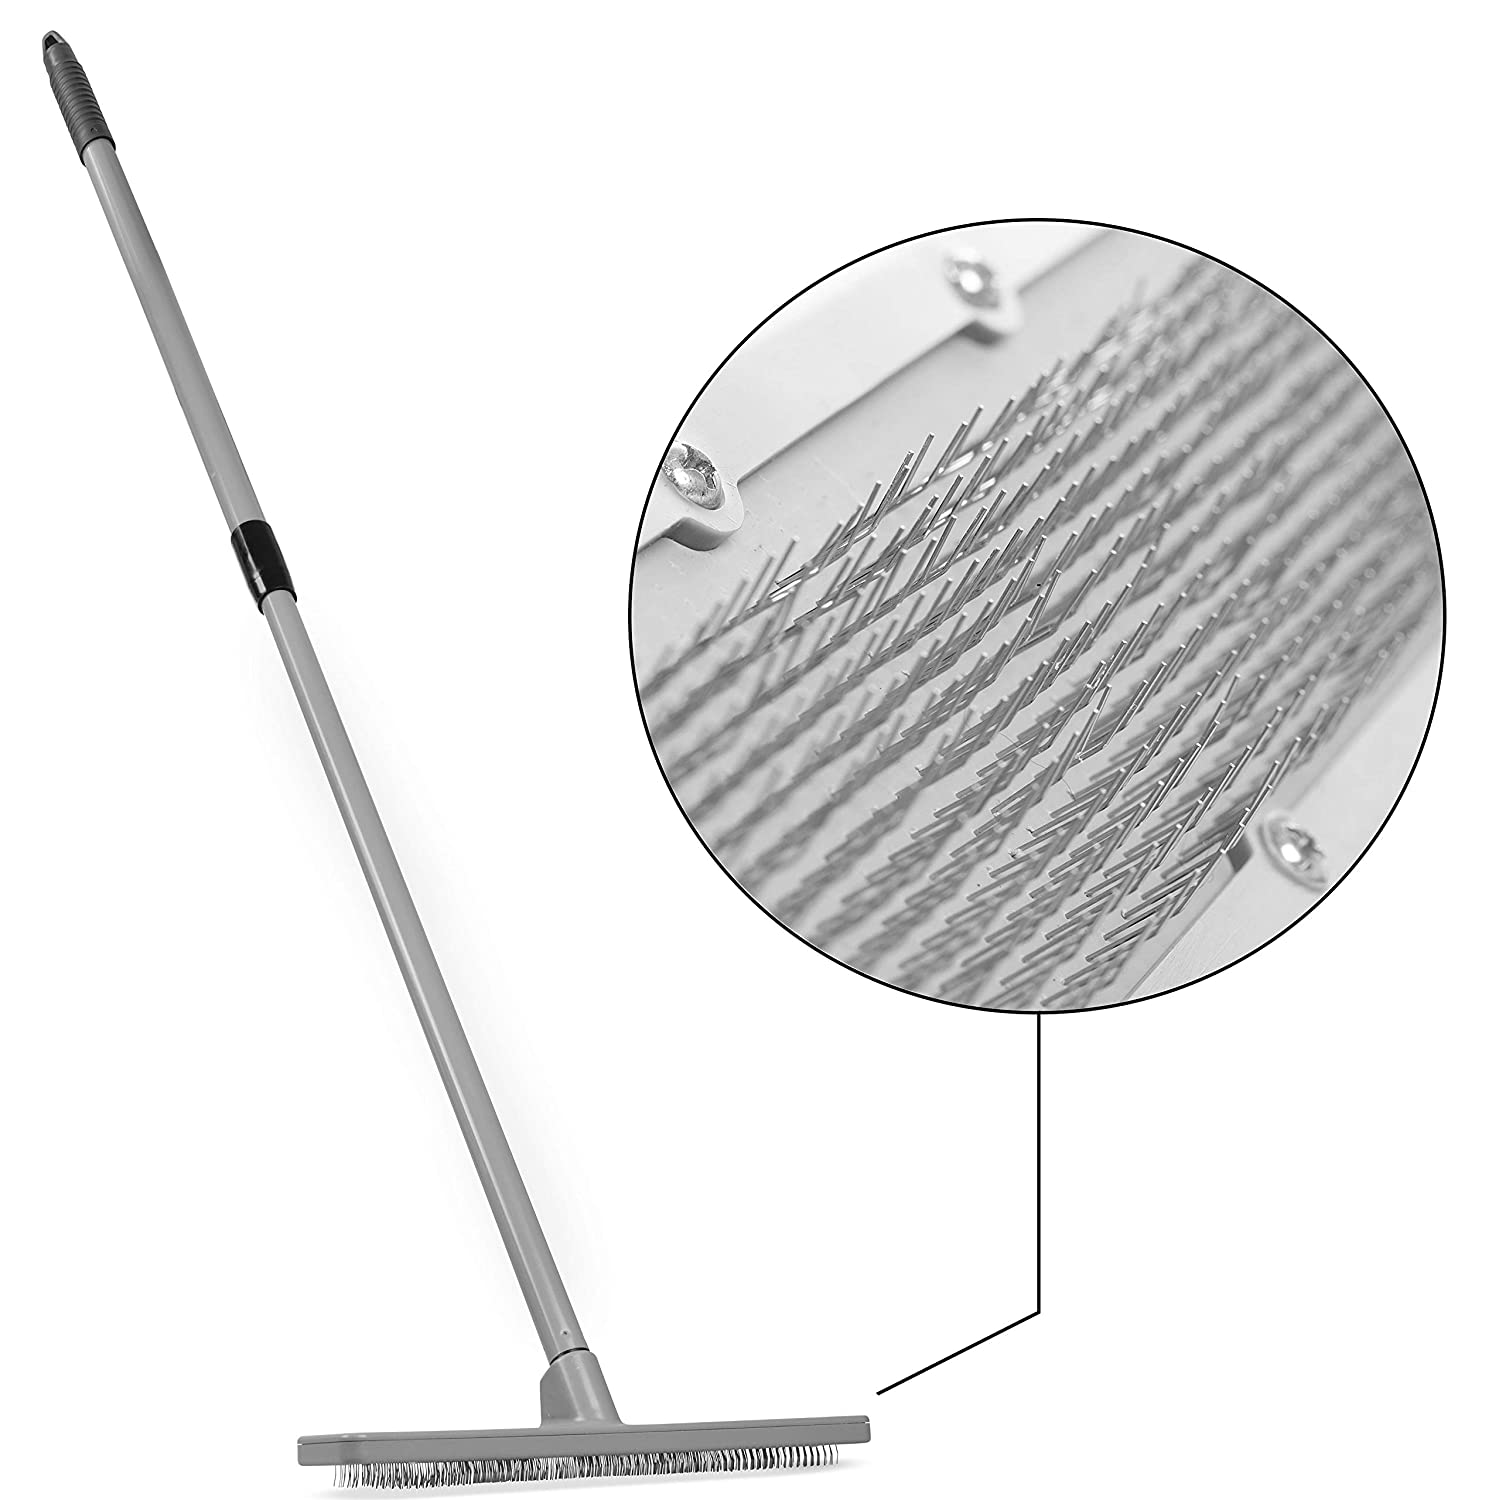 Quality Line Universal Carpet Rake   Effective & Safe Pet Hair Removal   User-Friendly Rug & Carpet Cleaner   Ergonomic & Unique Design   Features a 4 Ft Extendable Pole